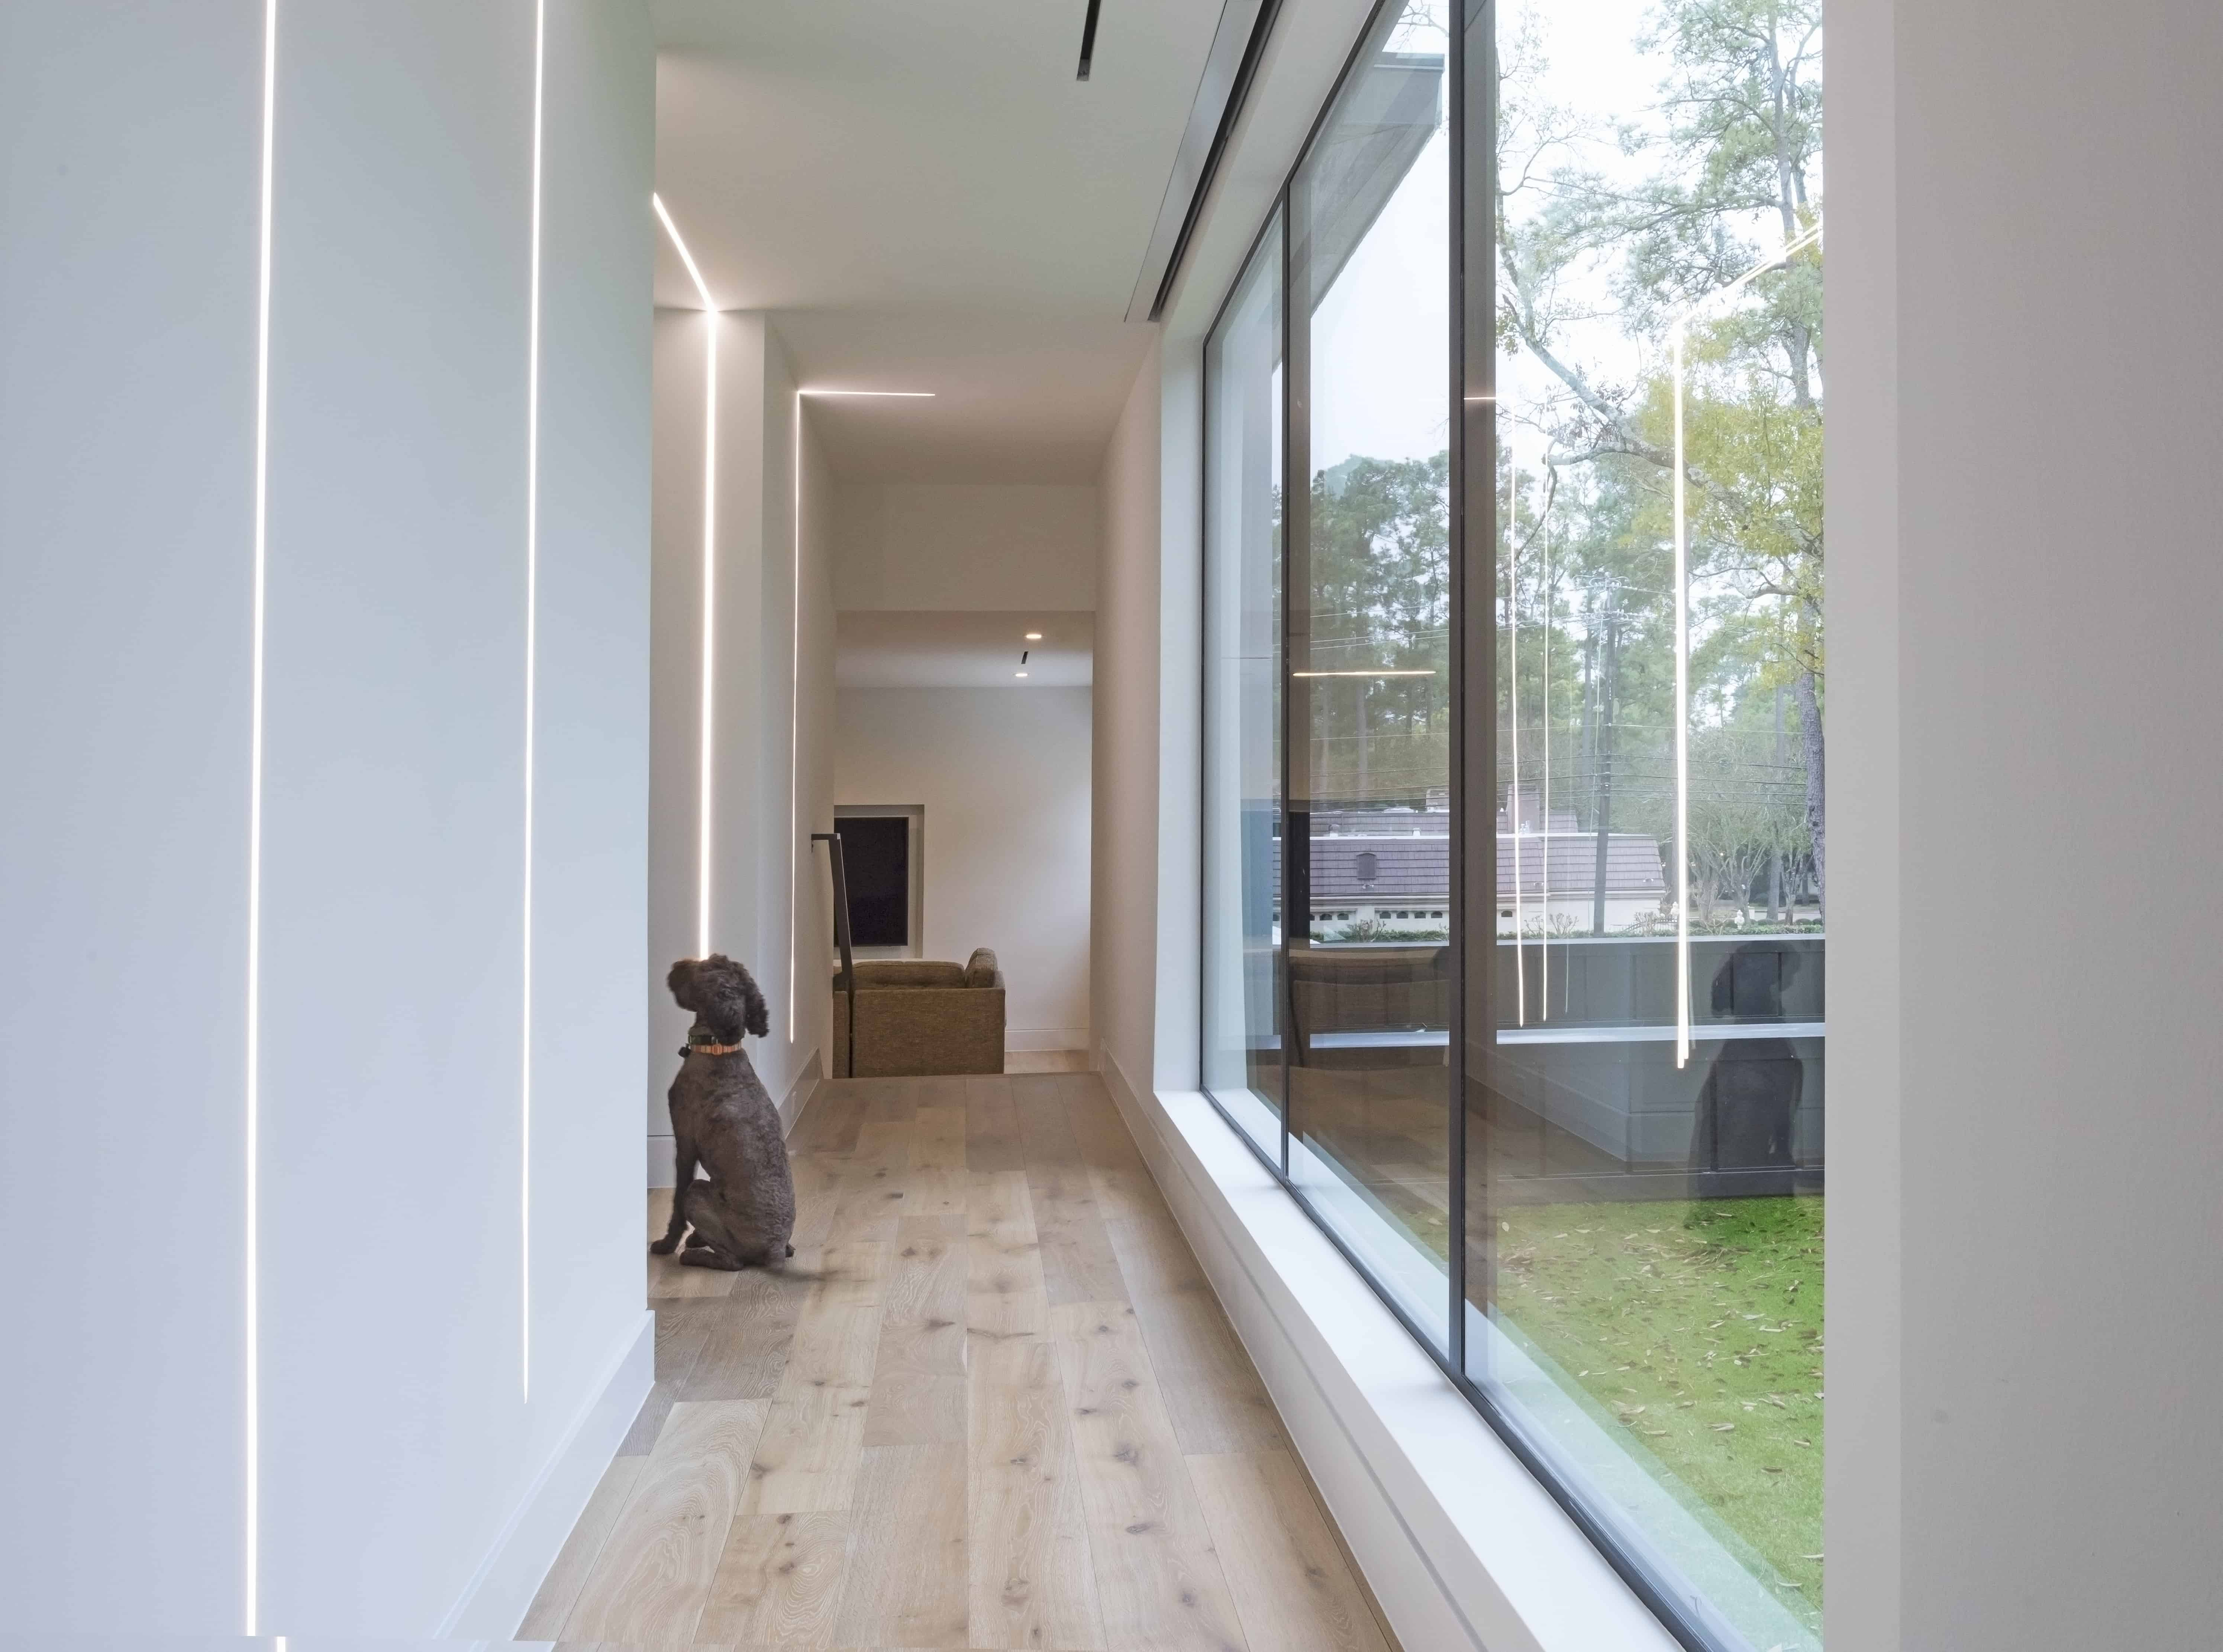 Warm Modern Home Piney Point Memorial Houston gallery space.